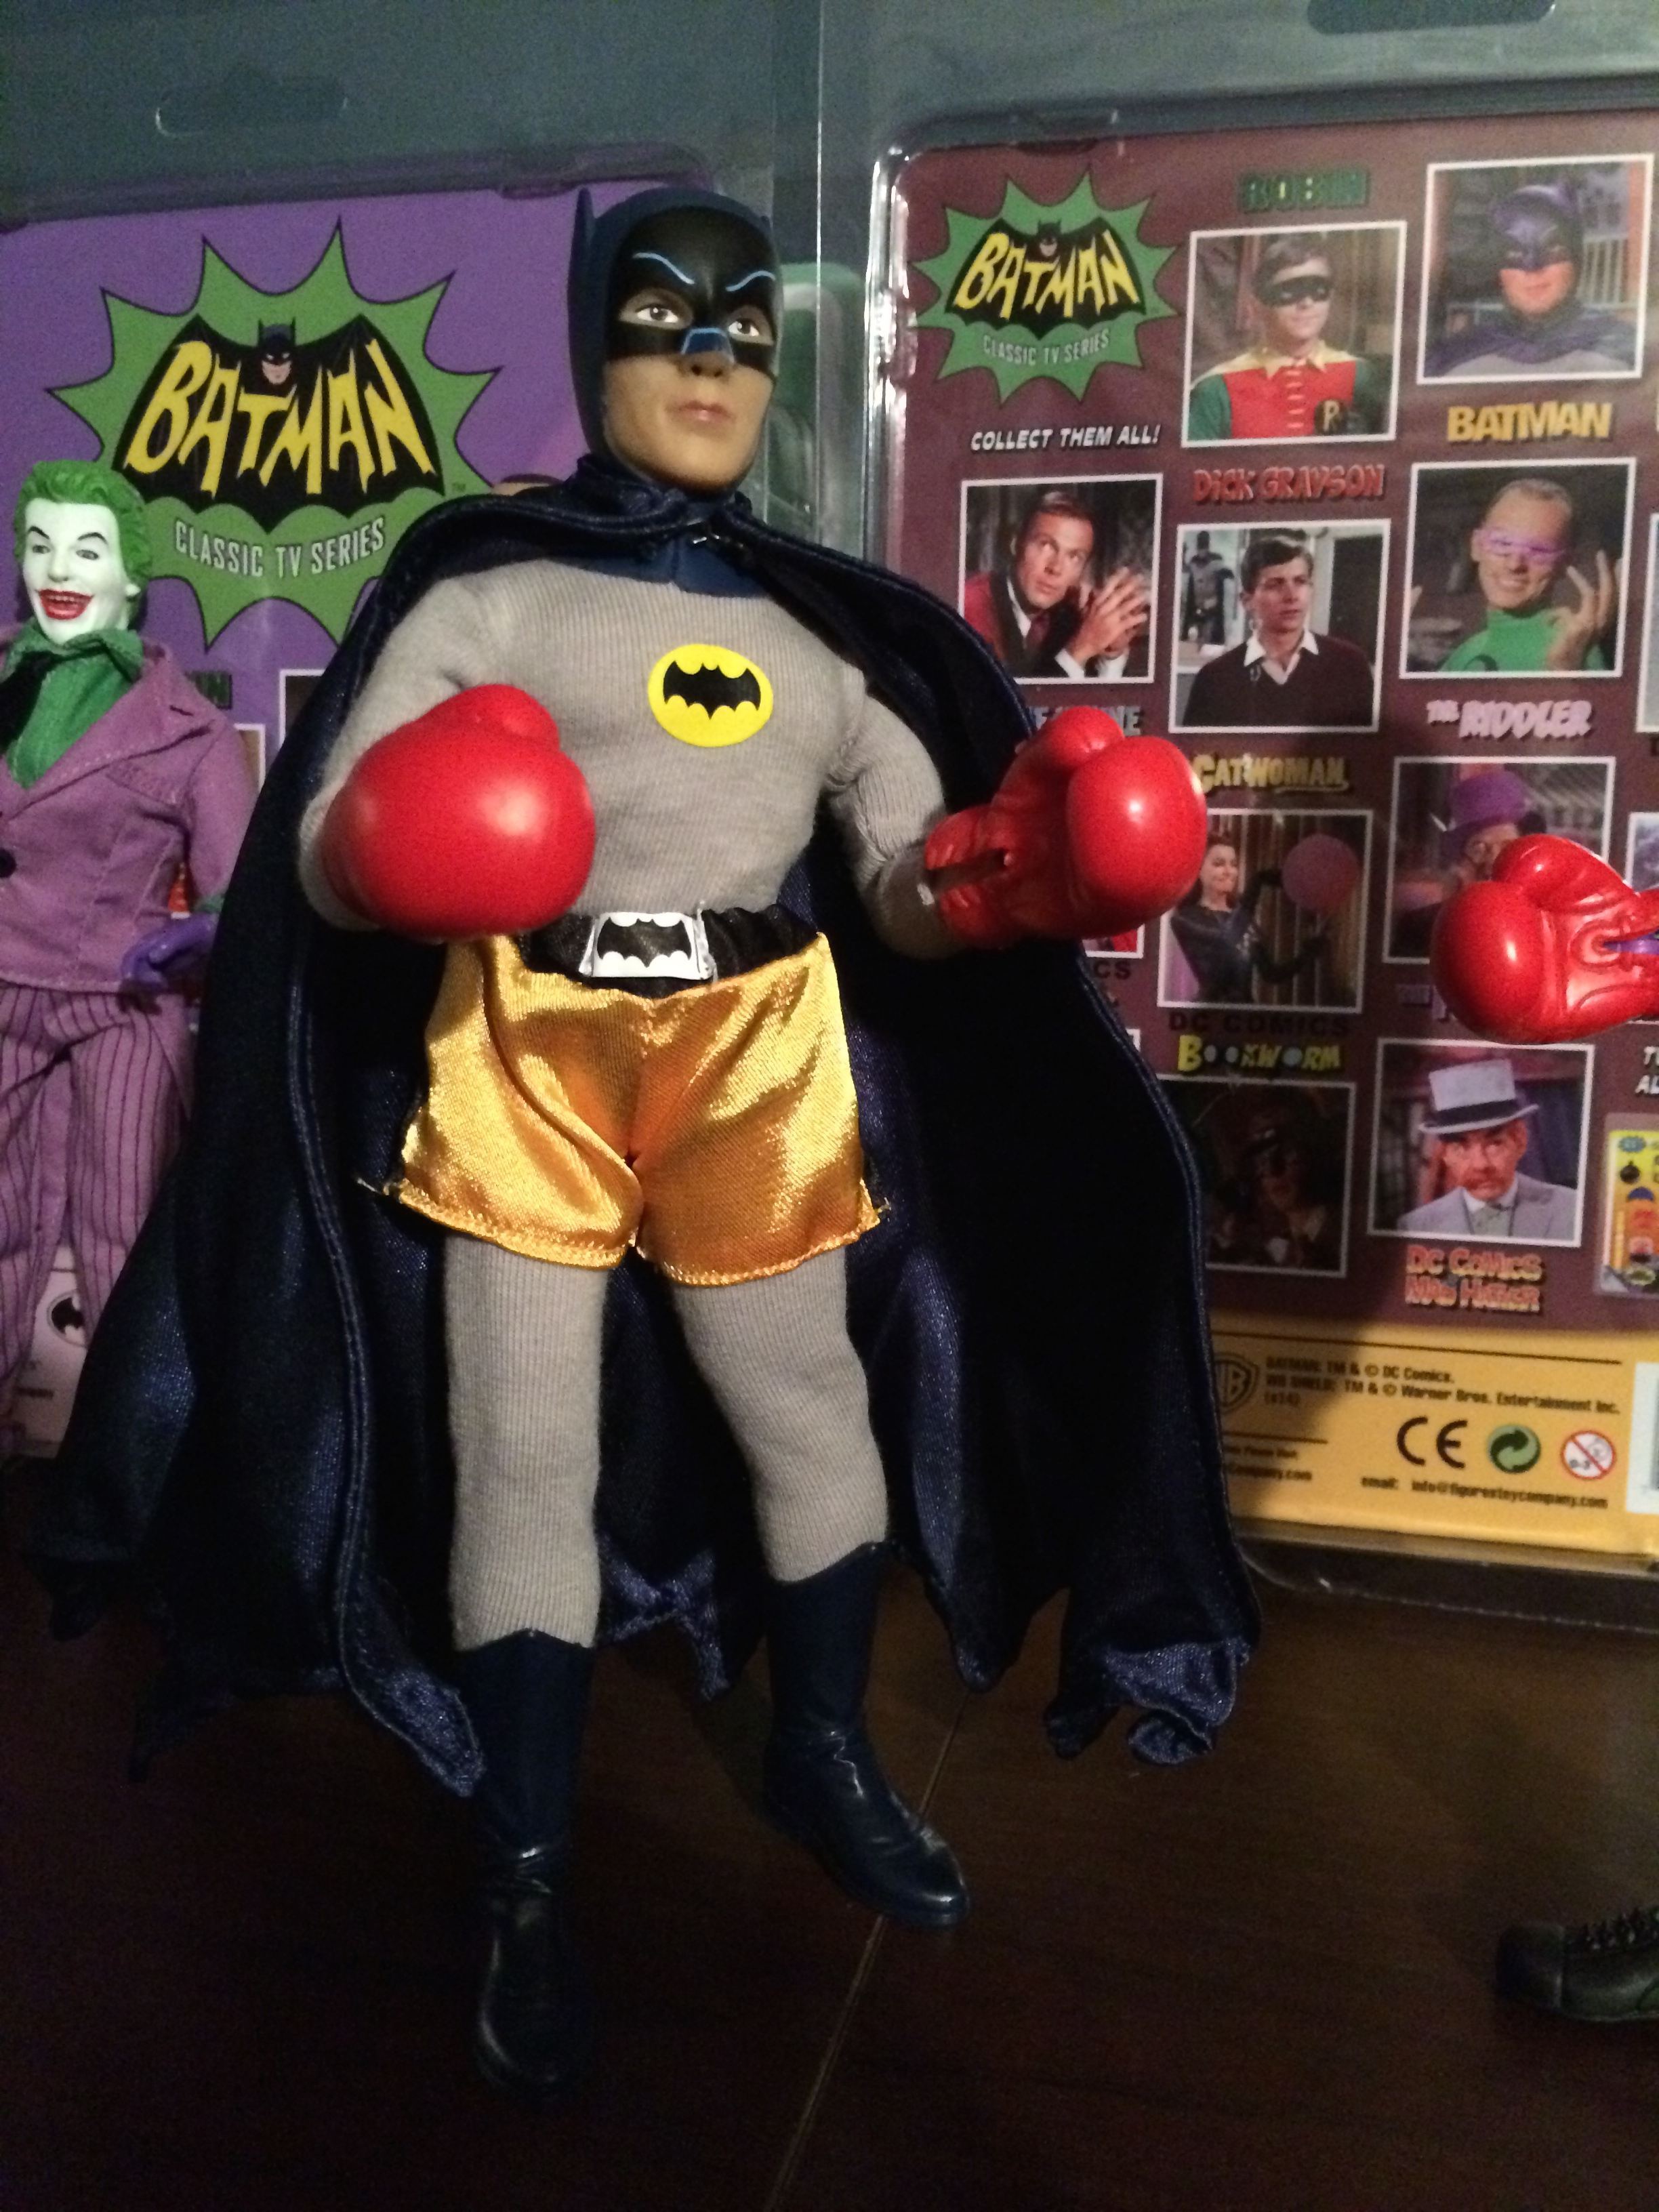 Batman boxing doll.